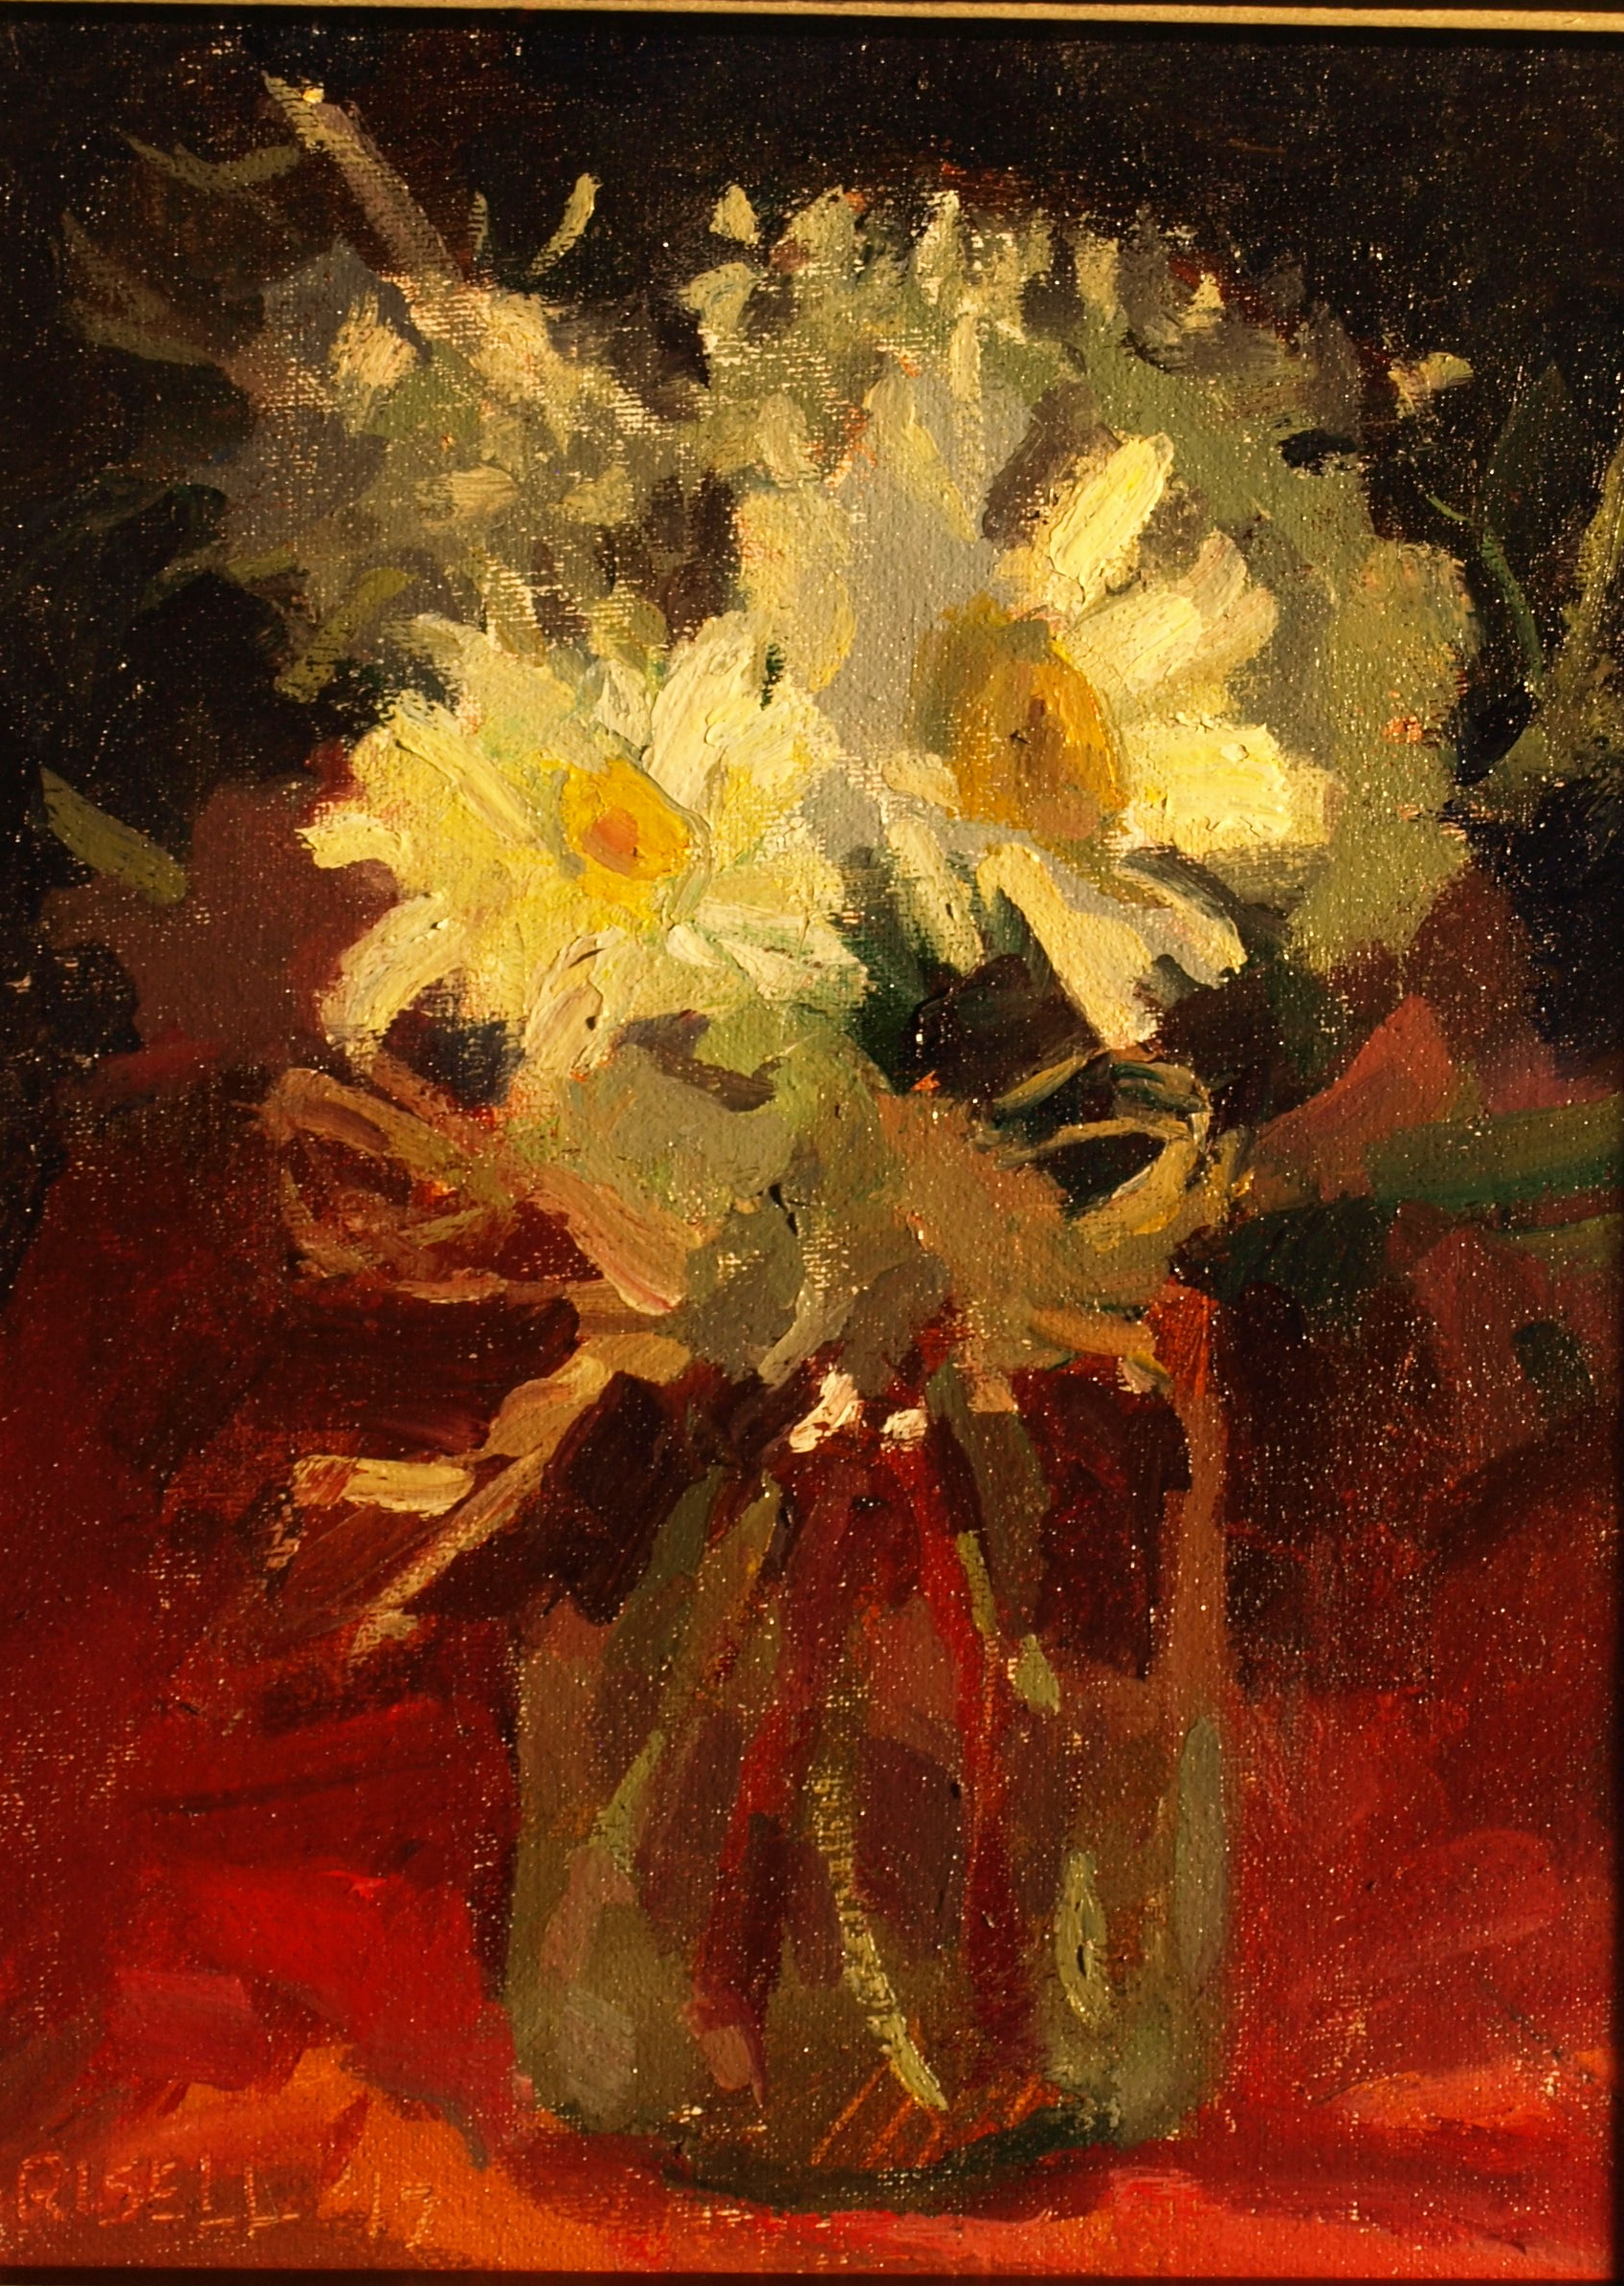 Daisies, Oil on Canvas on Panel, 10 x 8 Inches, by Susan Grisell, $200